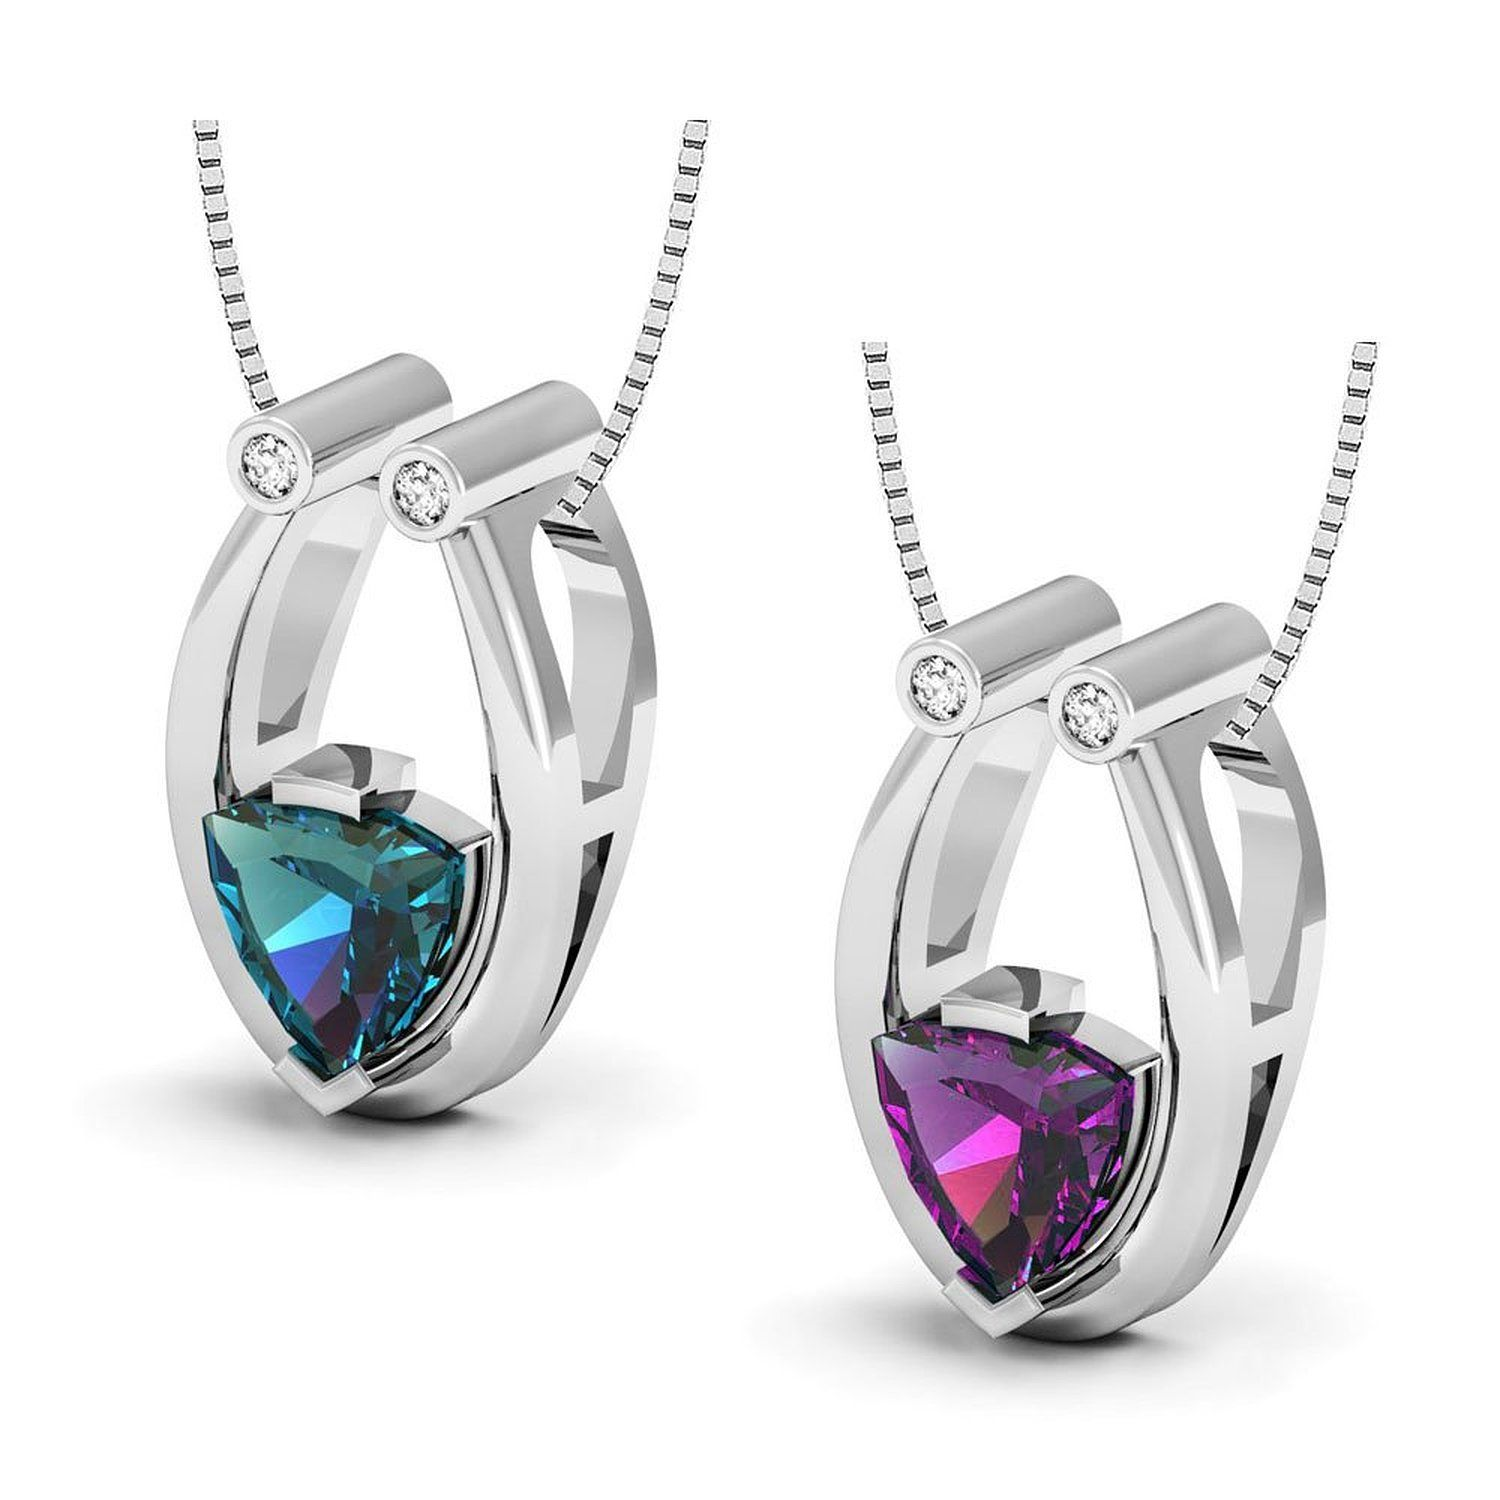 magic necklace two in adorn one purplish alexandrite to from shows changes colour gemstone pendant s the red green